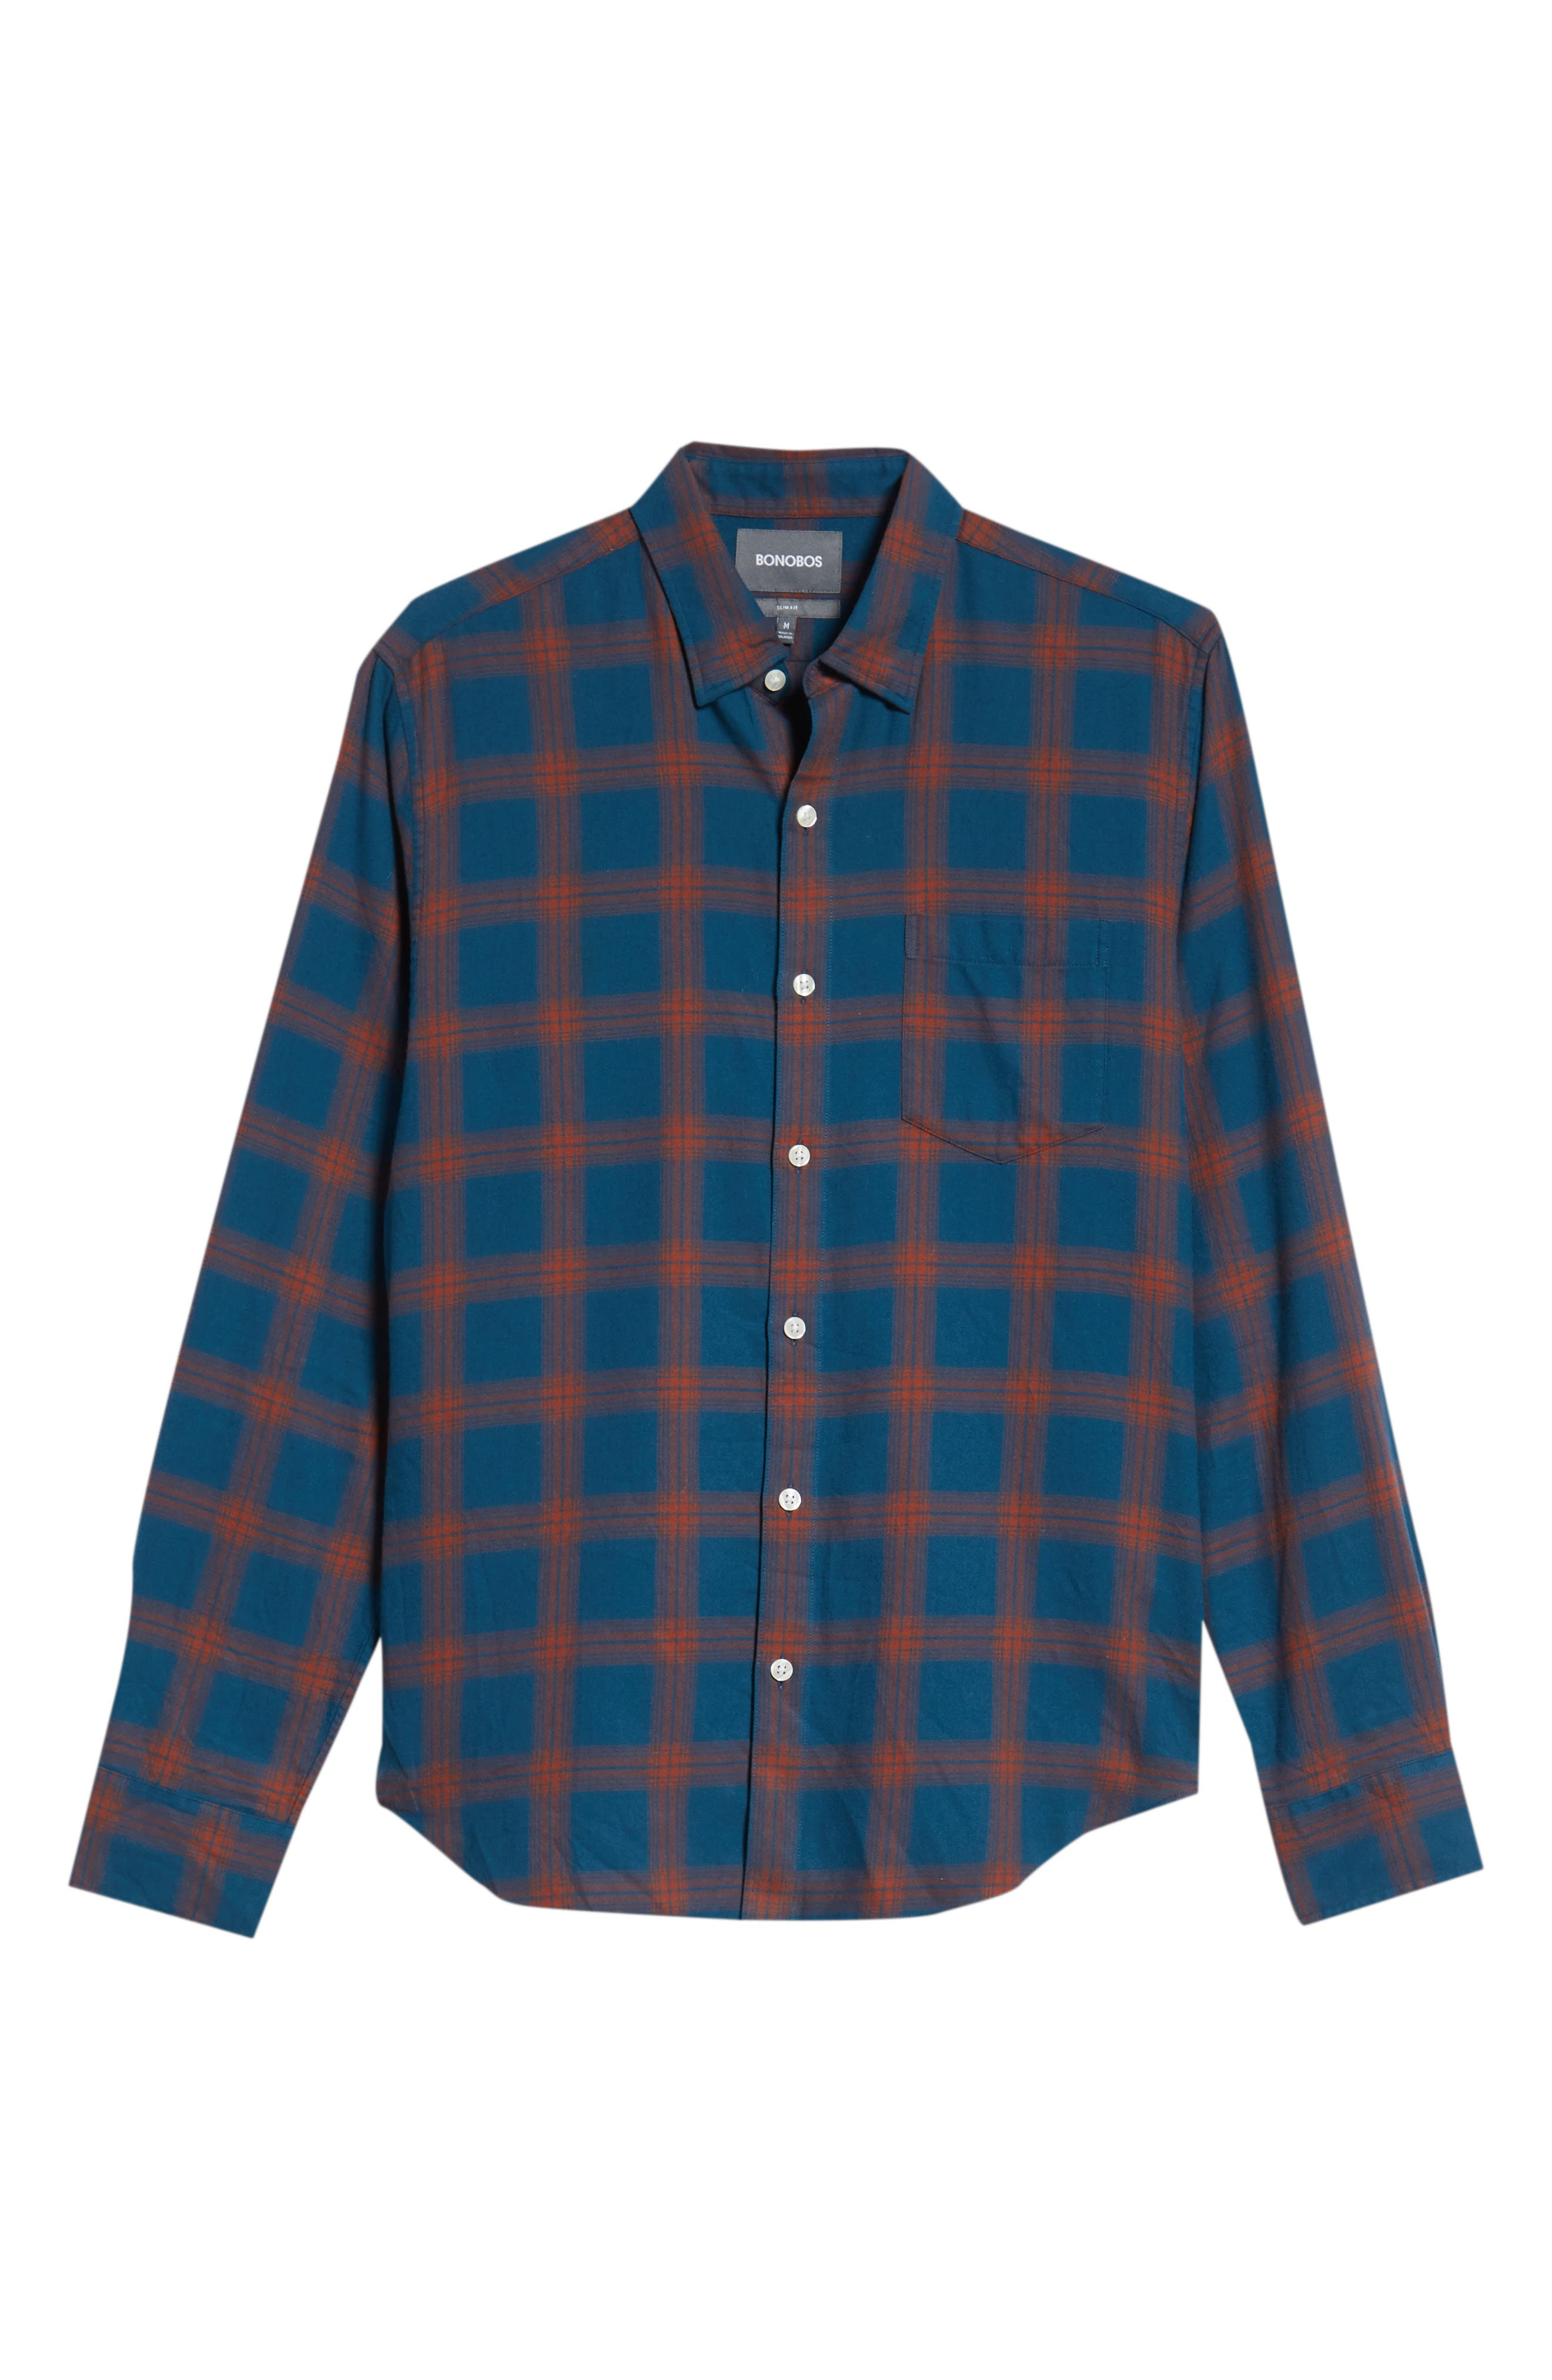 Slim Fit Check Brushed Twill Sport Shirt,                             Alternate thumbnail 5, color,                             CHECK TEAL